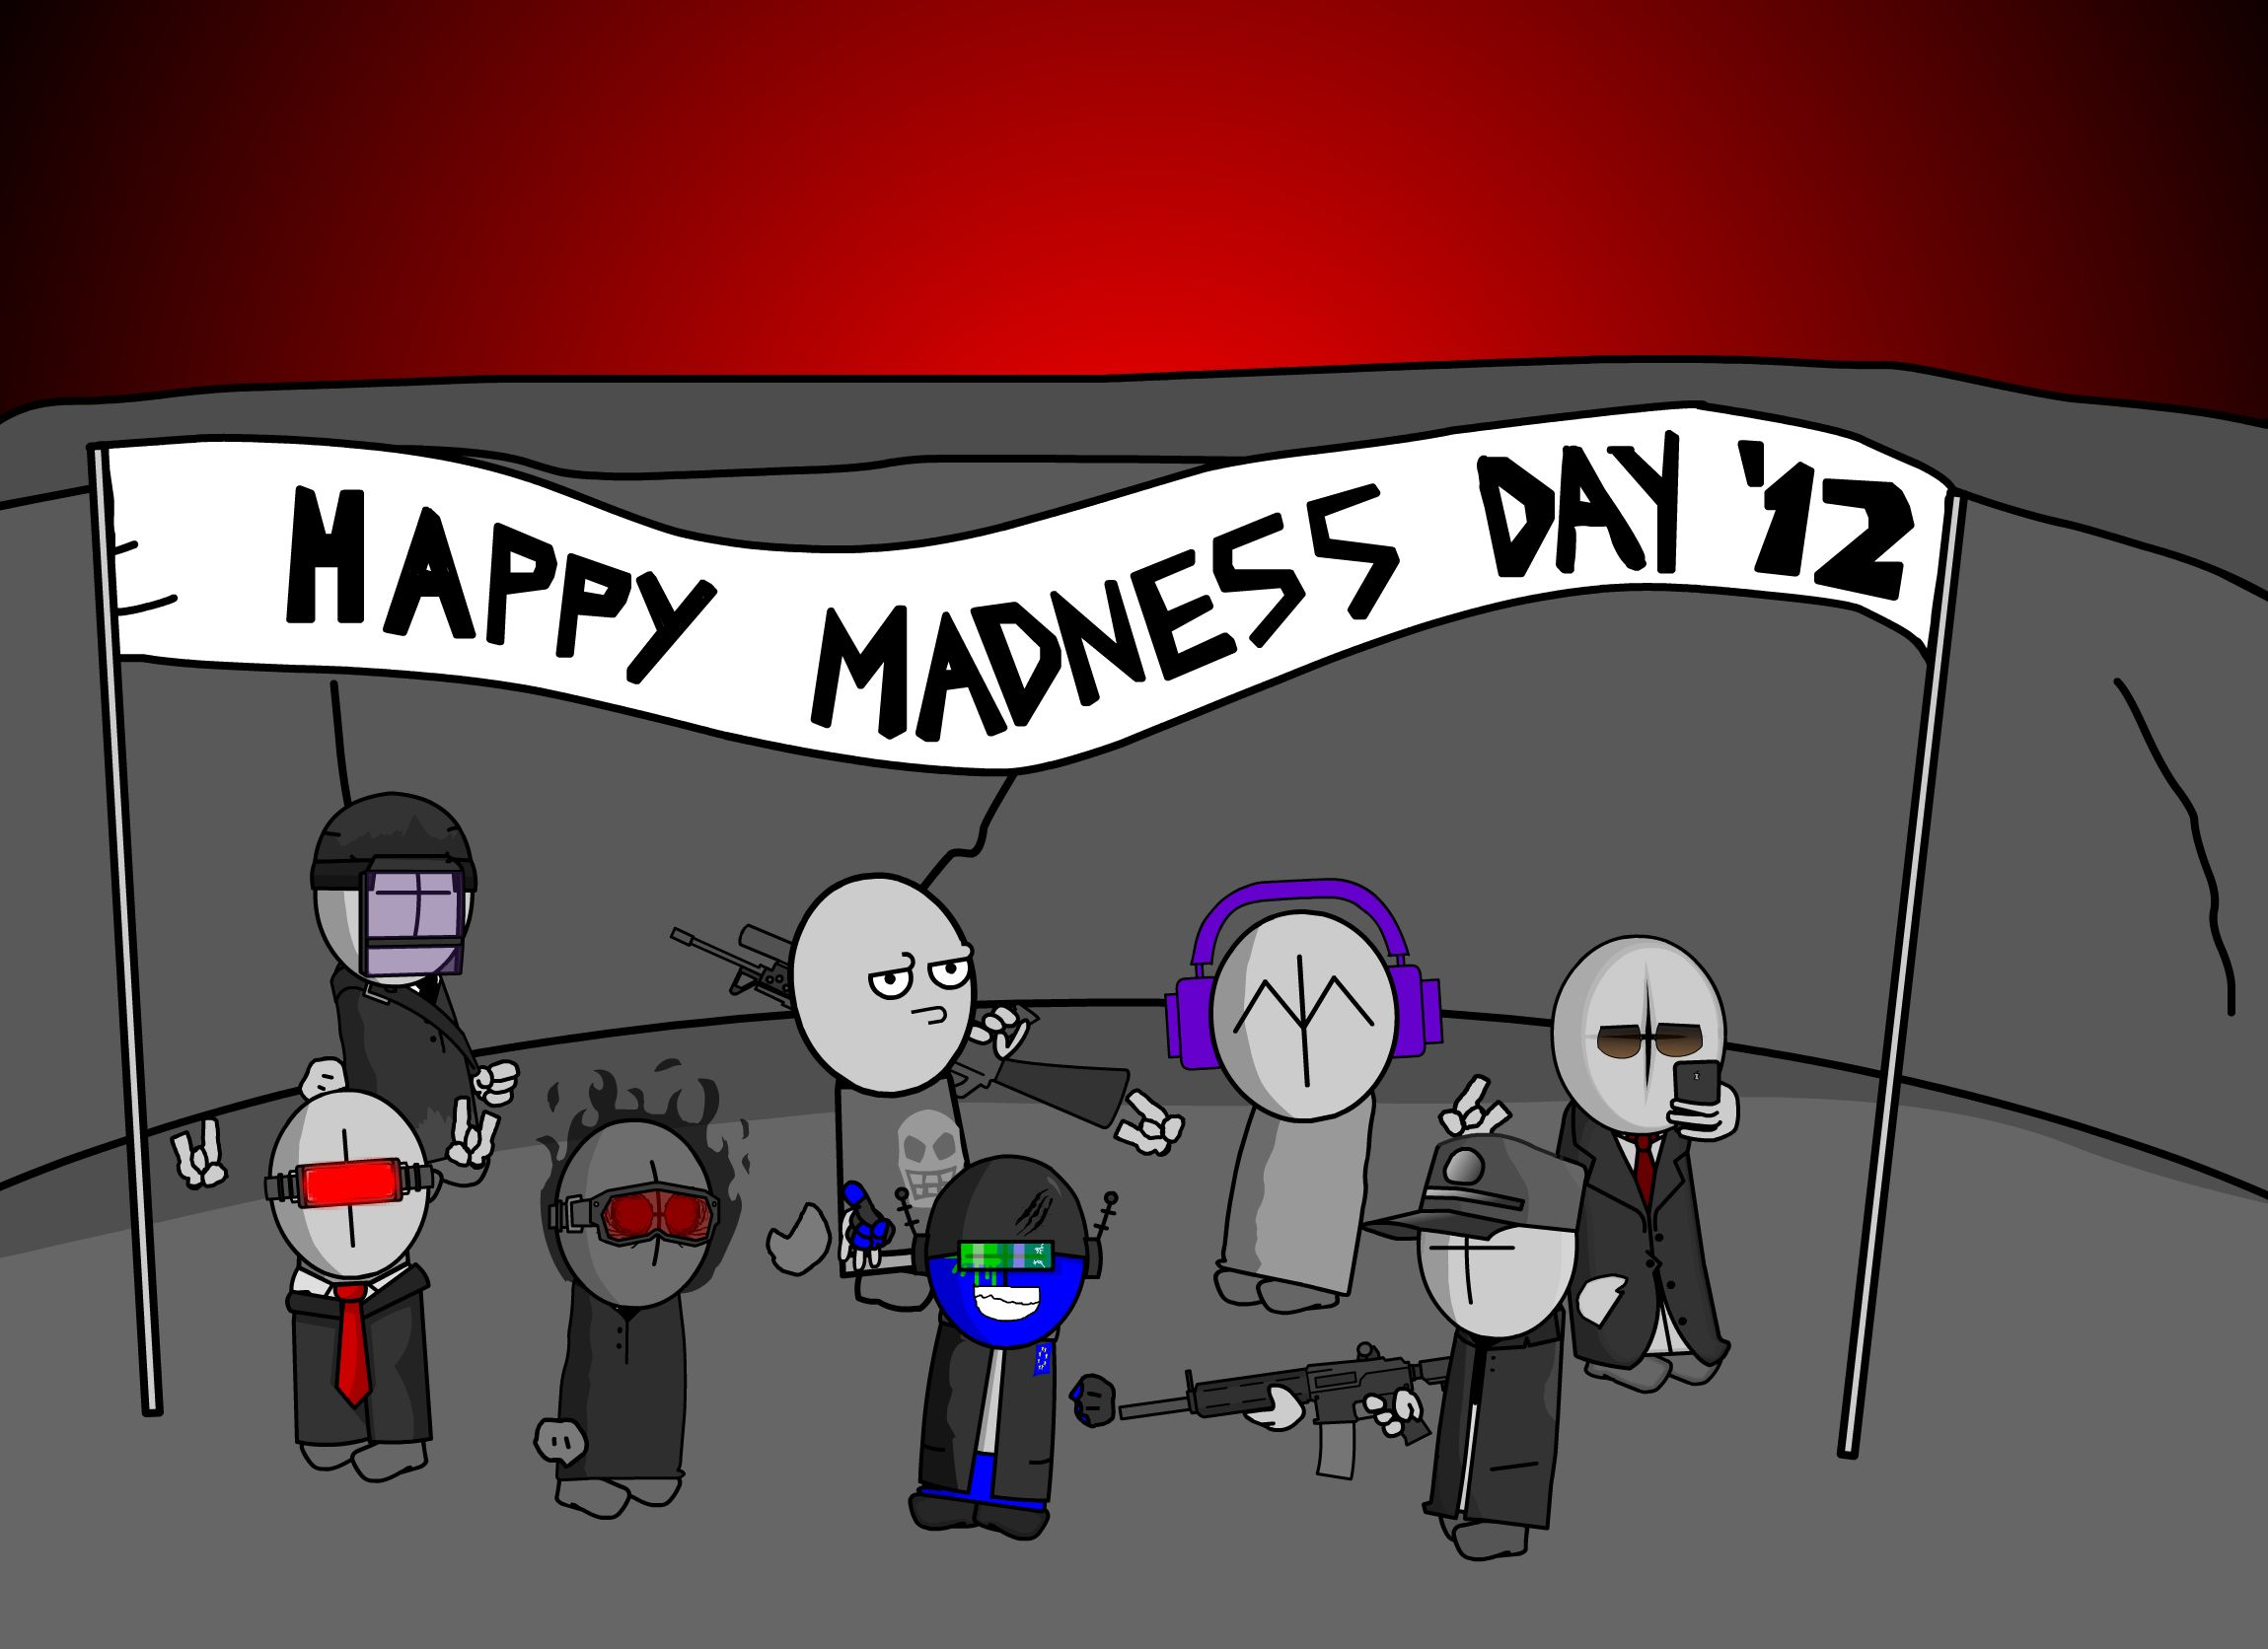 Madness day 2012 post card